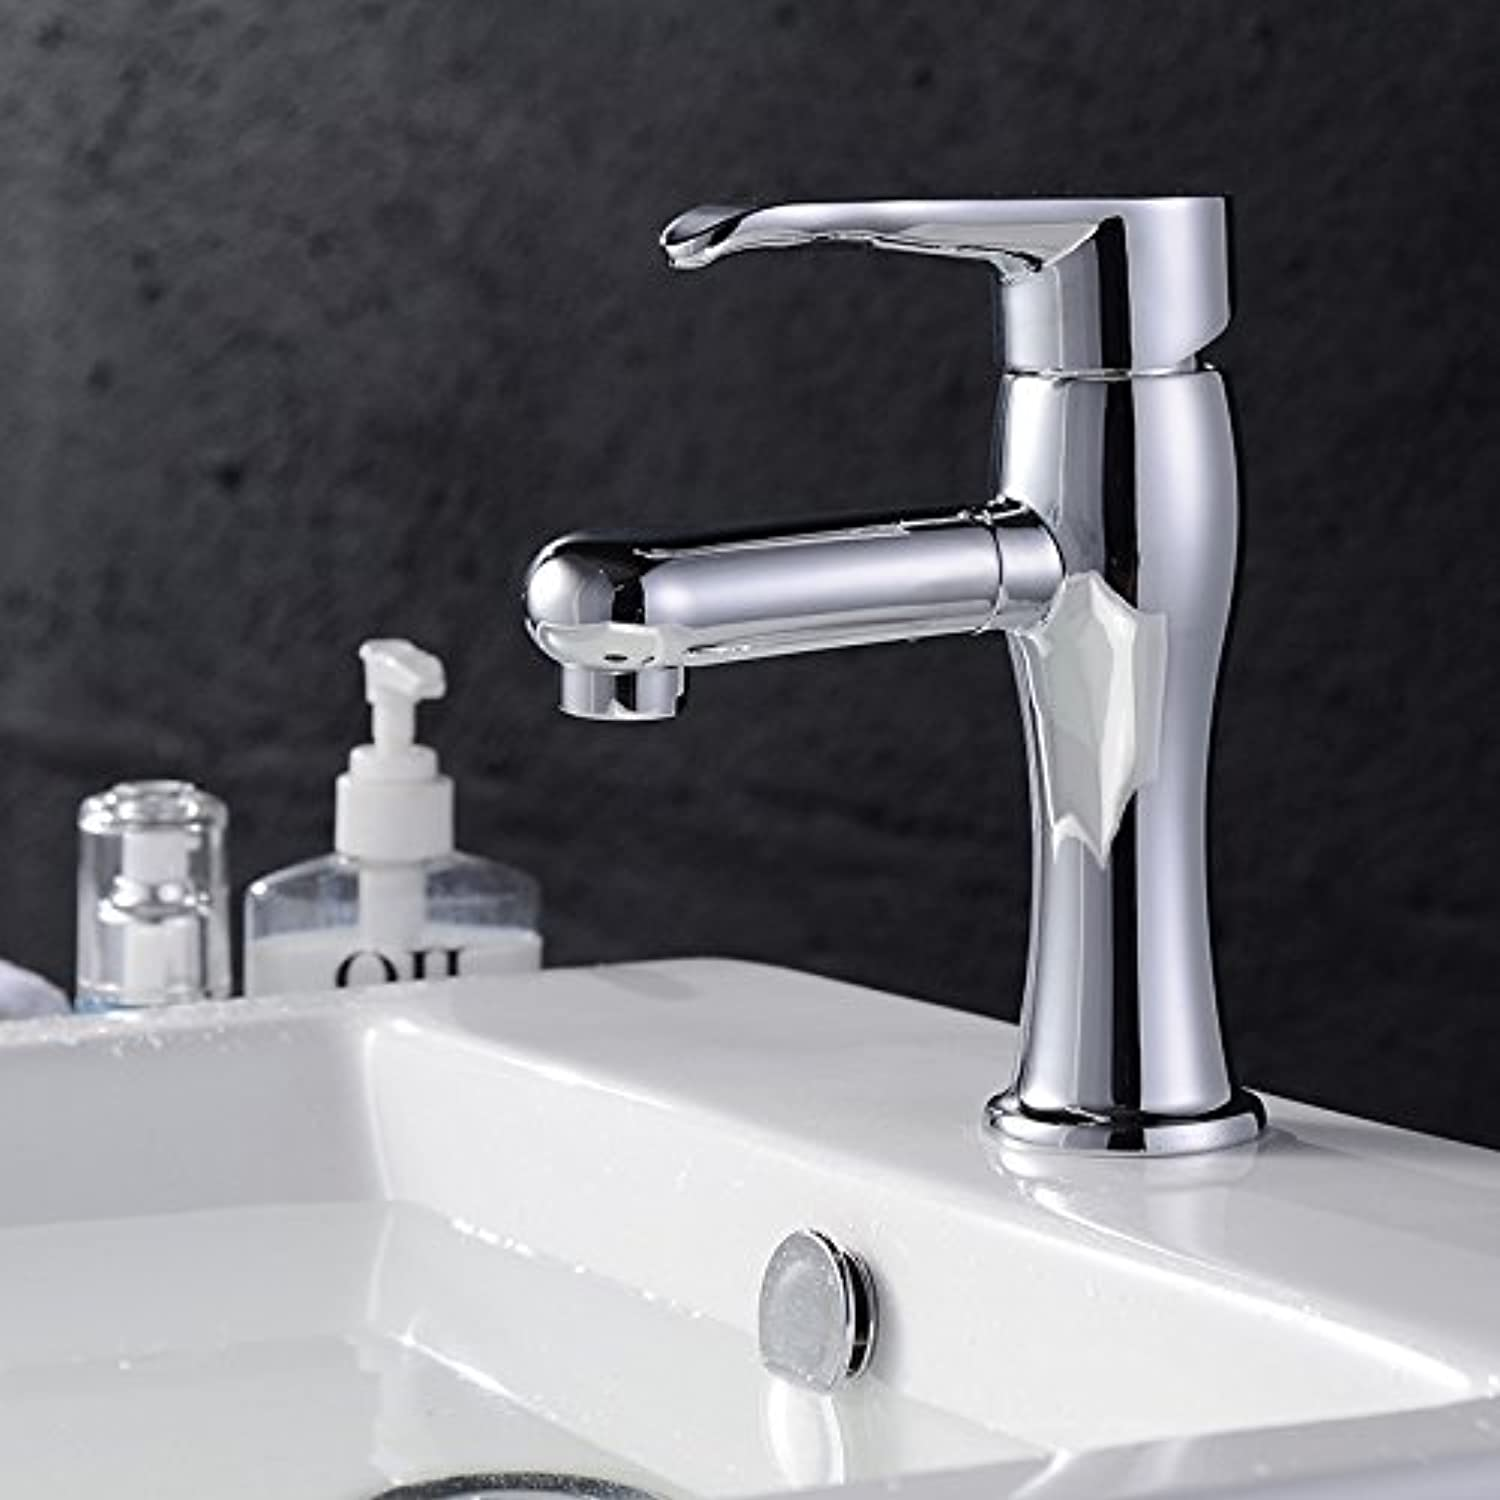 LHbox Basin Mixer Tap Bathroom Sink Faucet Basin faucet, plus high-basin faucet, stainless steel faucet, Spanner type water taps, the high water faucet